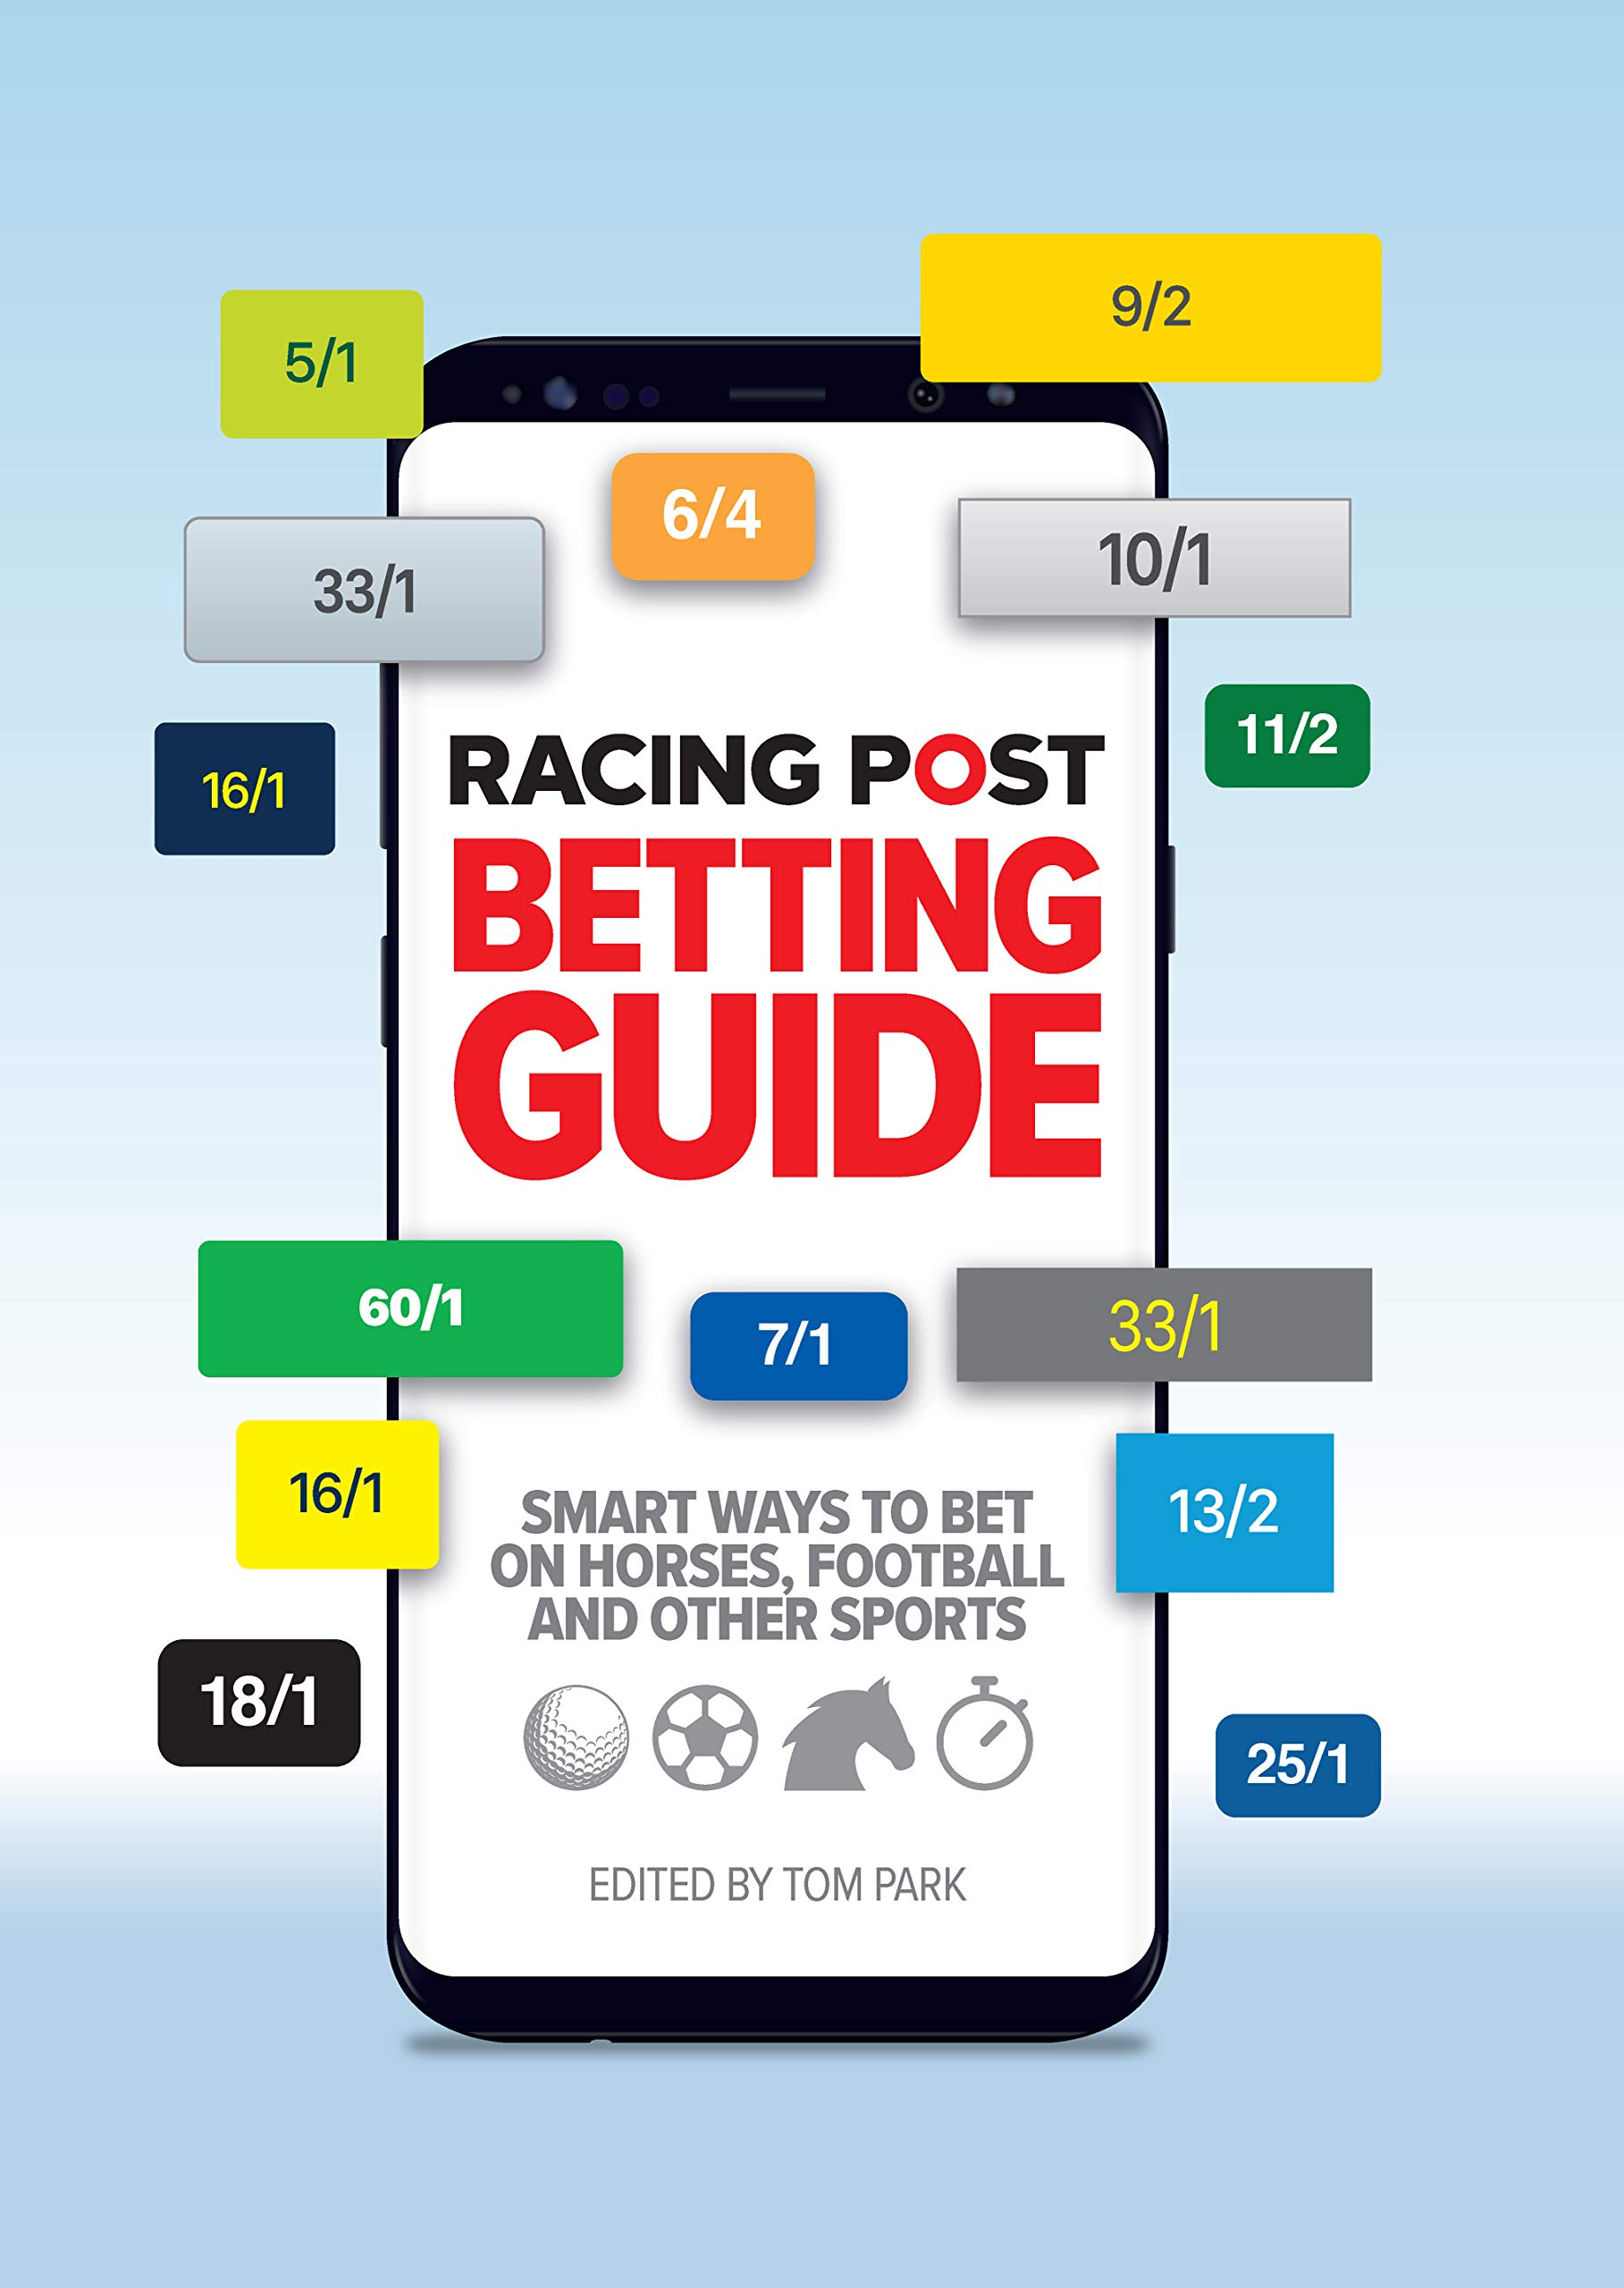 Racing post tips of the day betting addicted to csgo betting websites